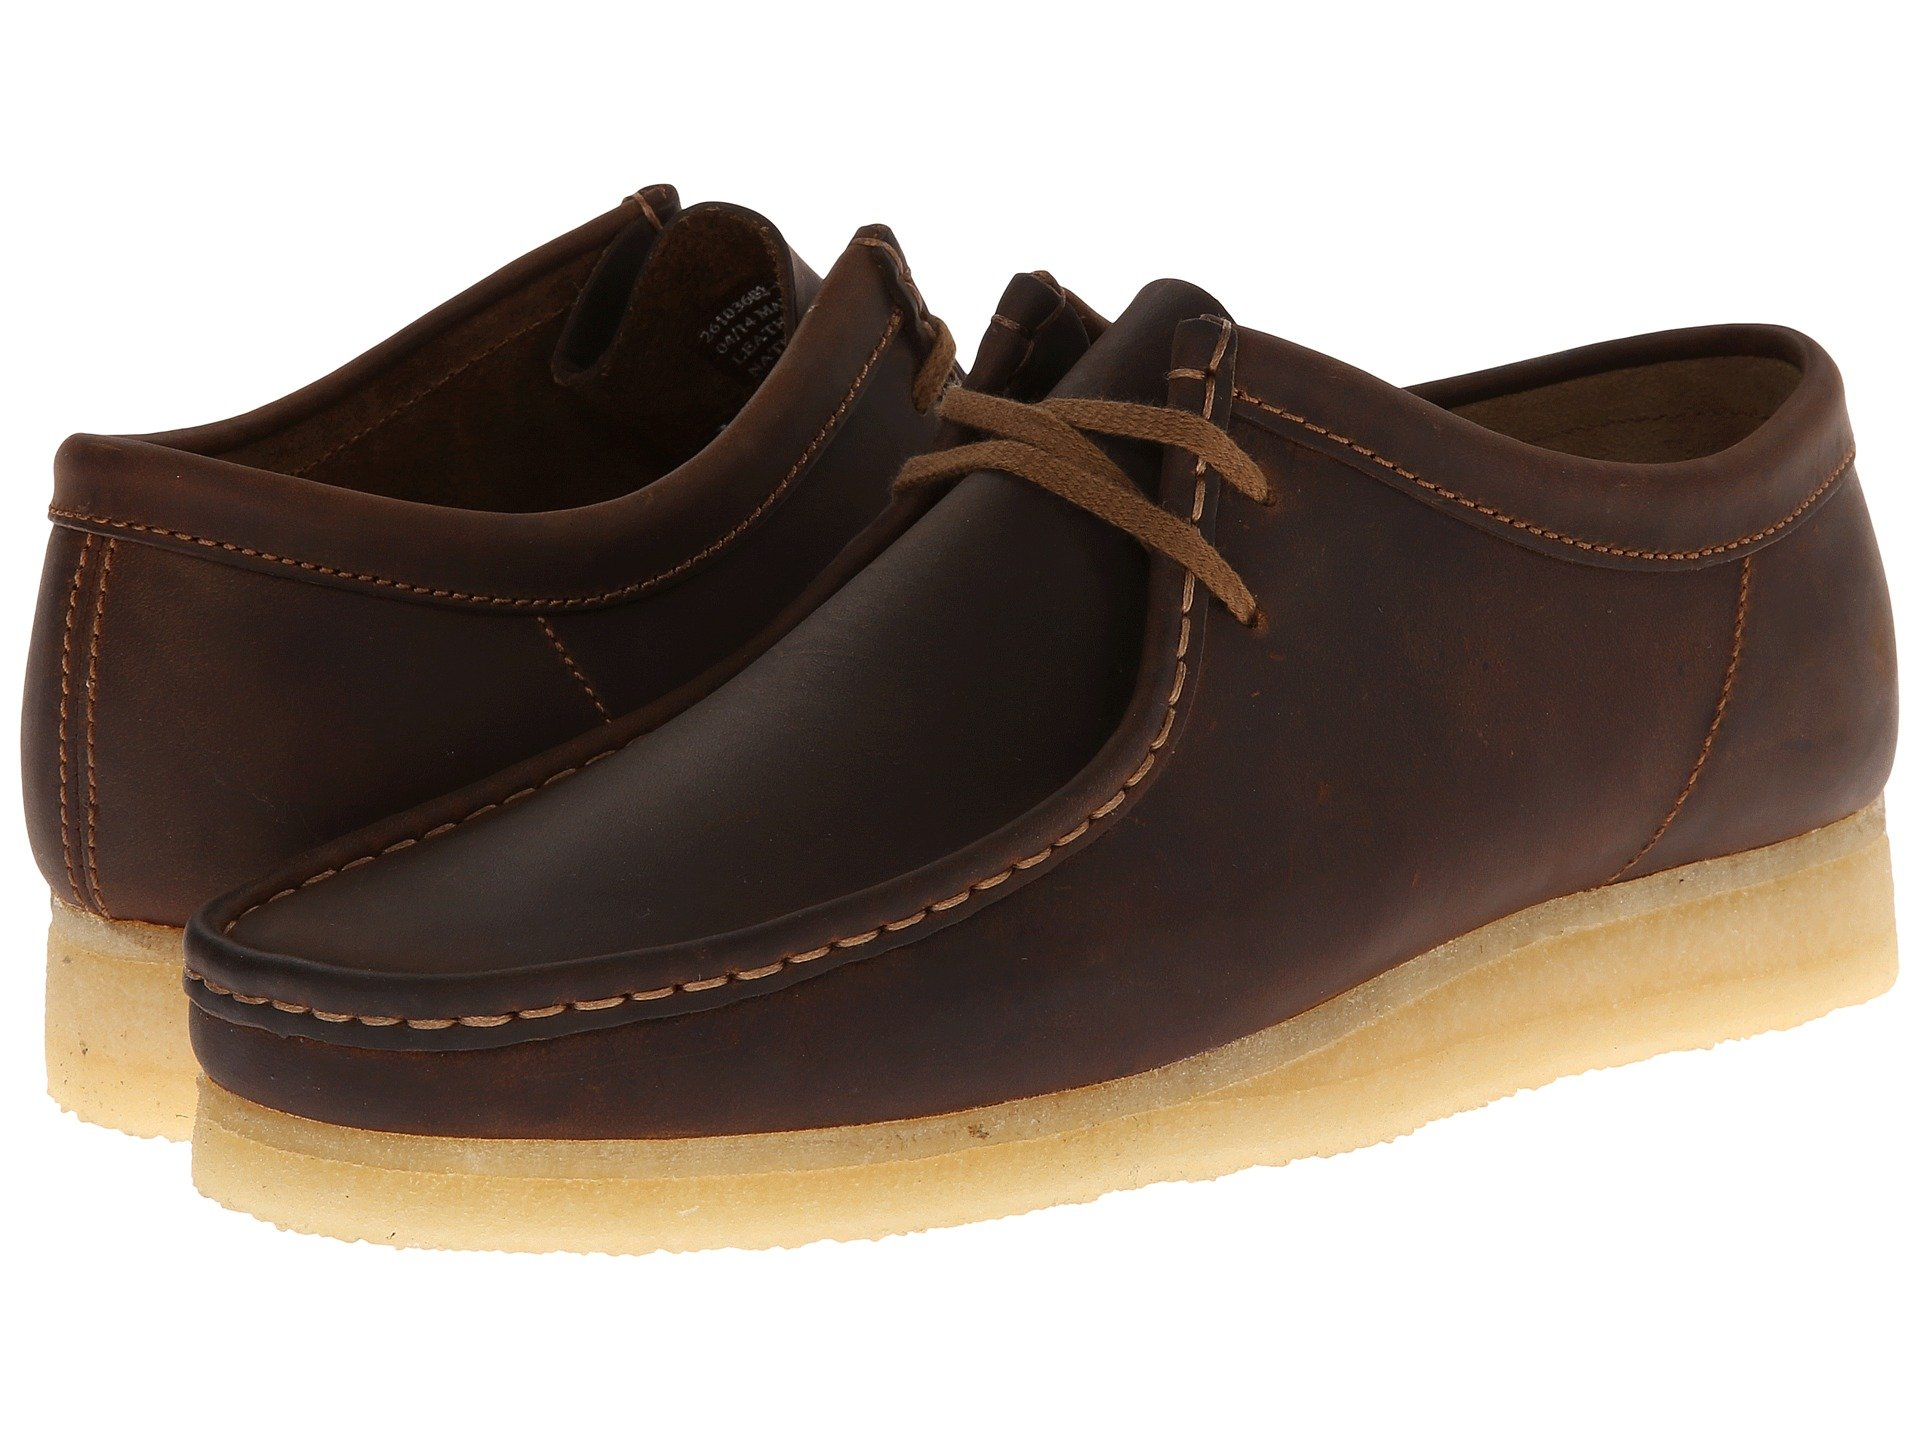 Clarks New Collection Shoes